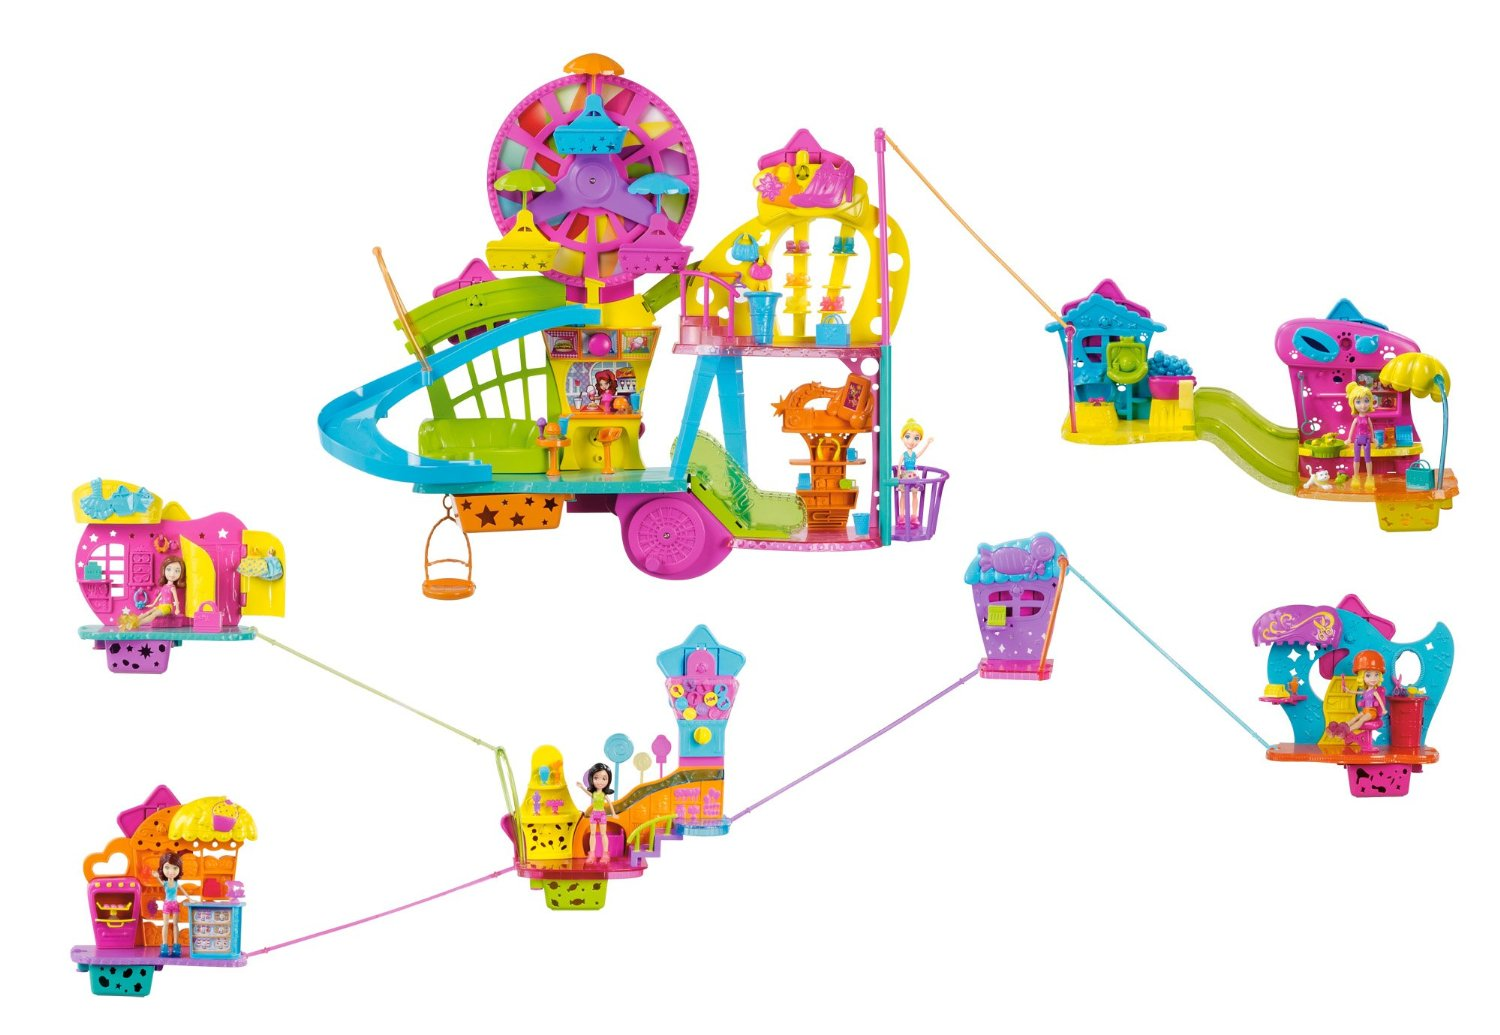 Polly Pocket Ultimate Wall Party Buildup Playset Only $27.27 – Reg $94.99